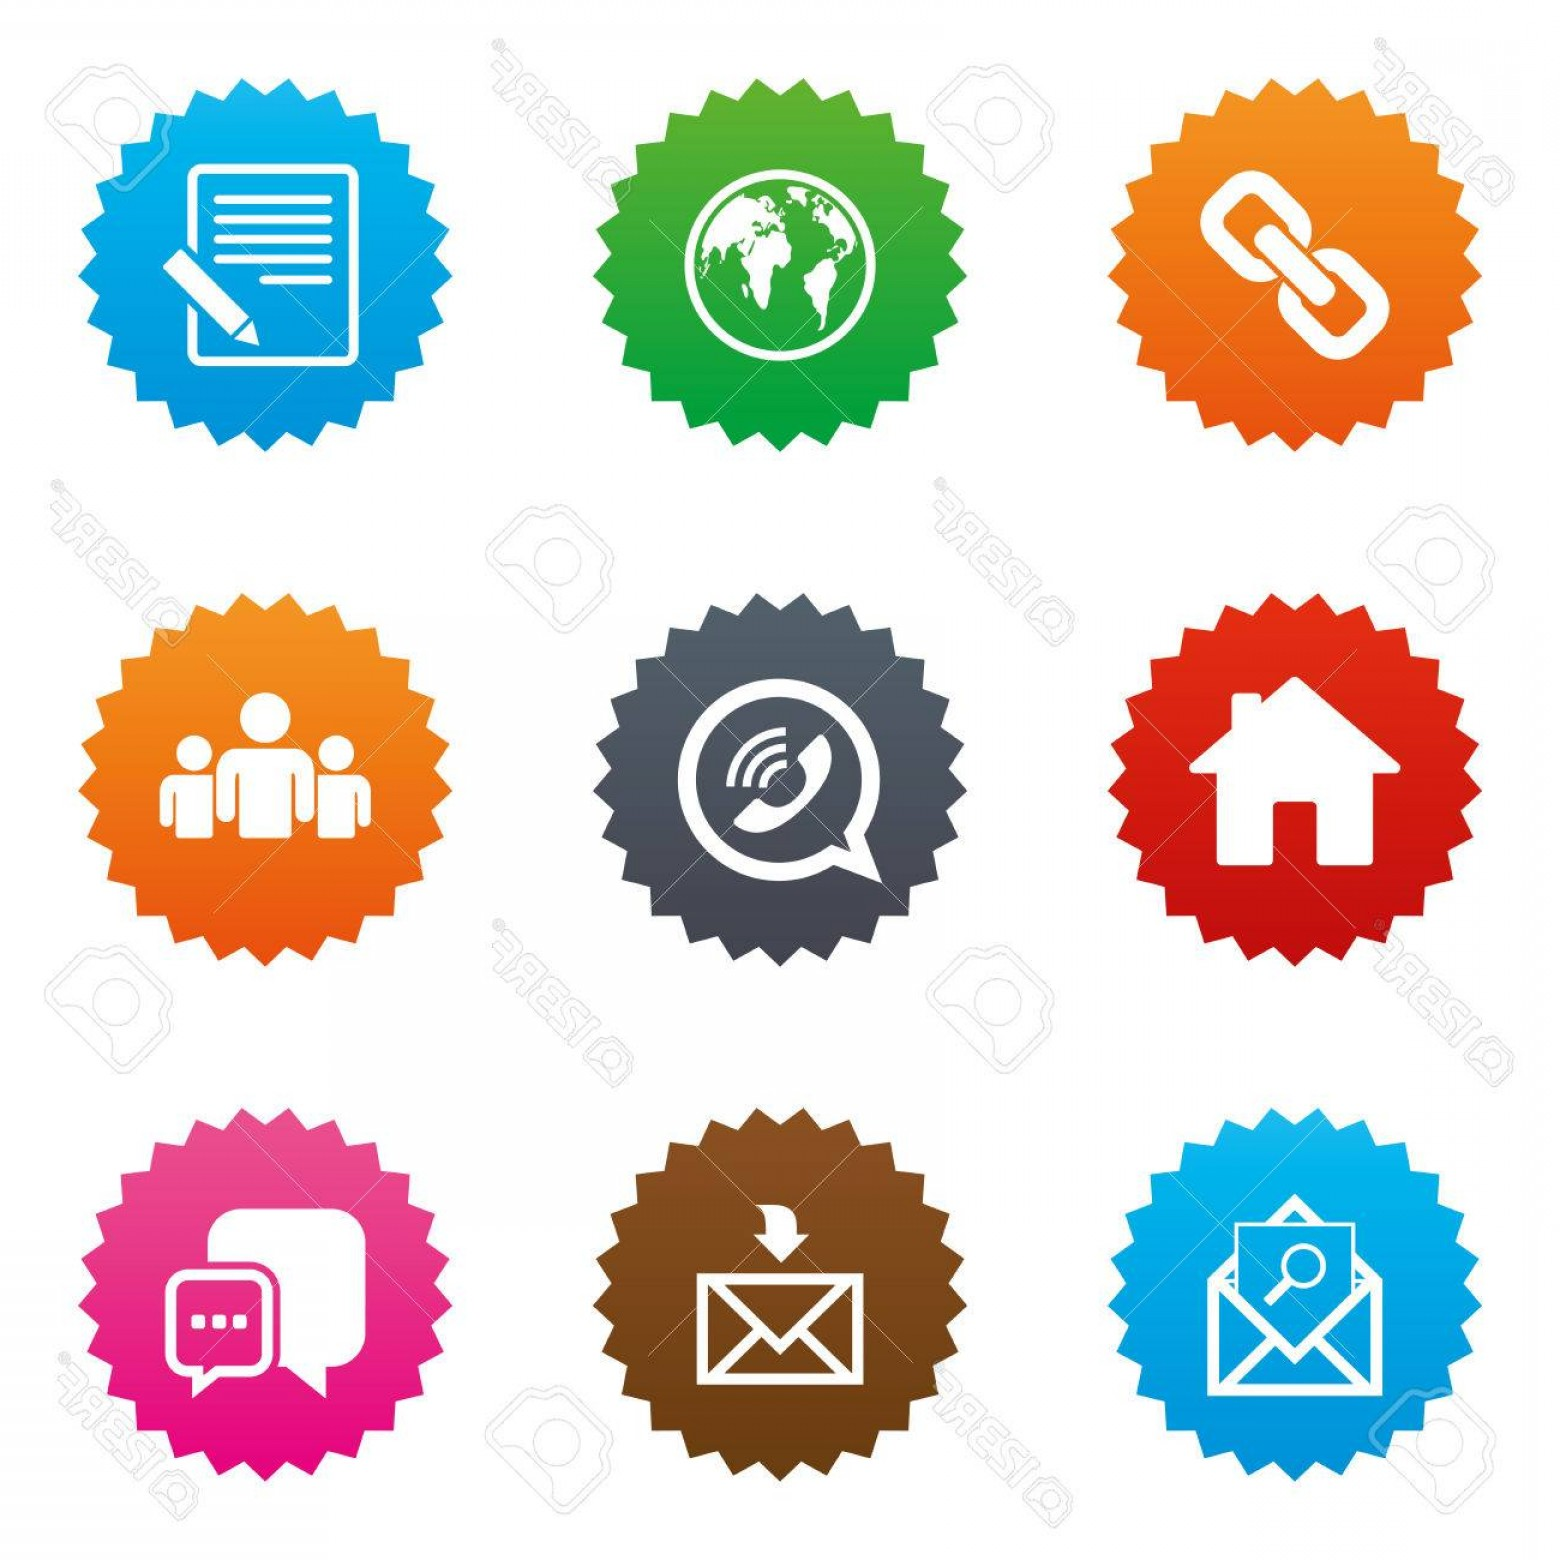 Contact Button Icons Vector Free: Photostock Vector Communication Icons Contact Mail Signs E Mail Call Phone And Group Symbols Stars Label Button With F